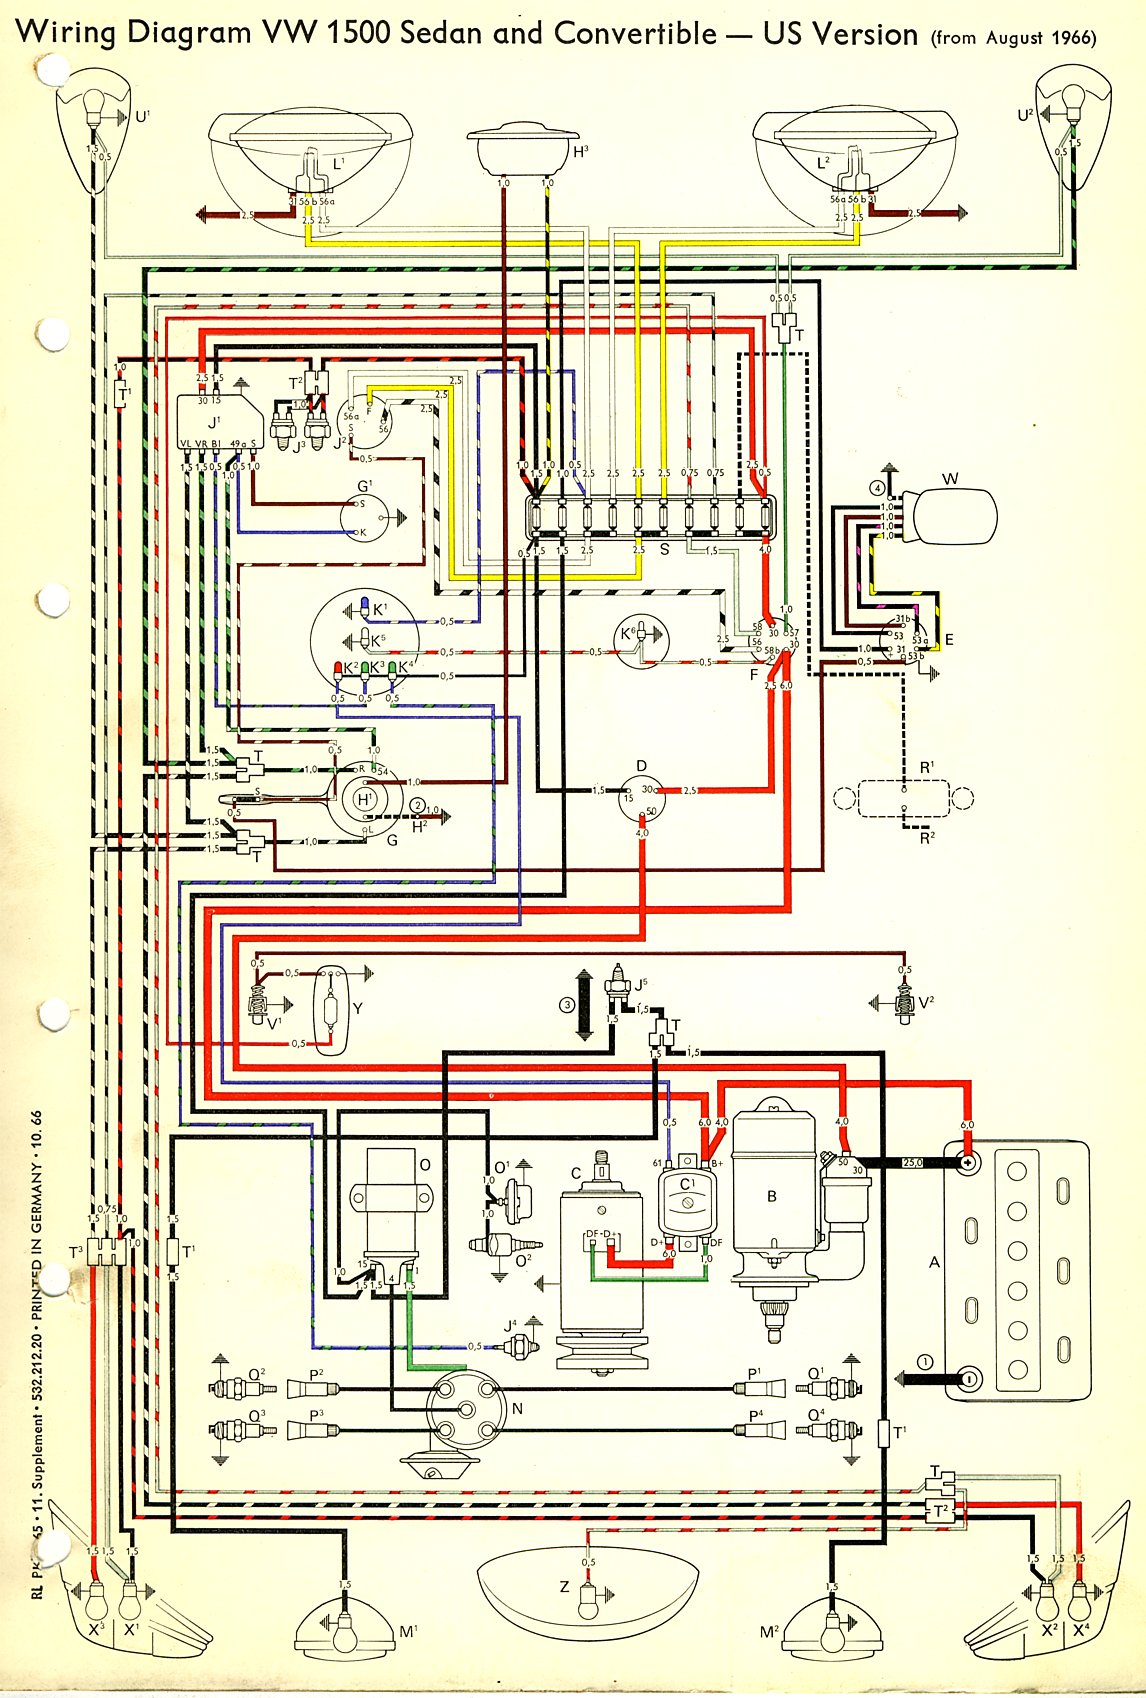 1967 wiper wiring diagram the vw bug rh 61vdub blogspot com wiper wiring diagram 2001 vw beetle vw polo wiper wiring diagram